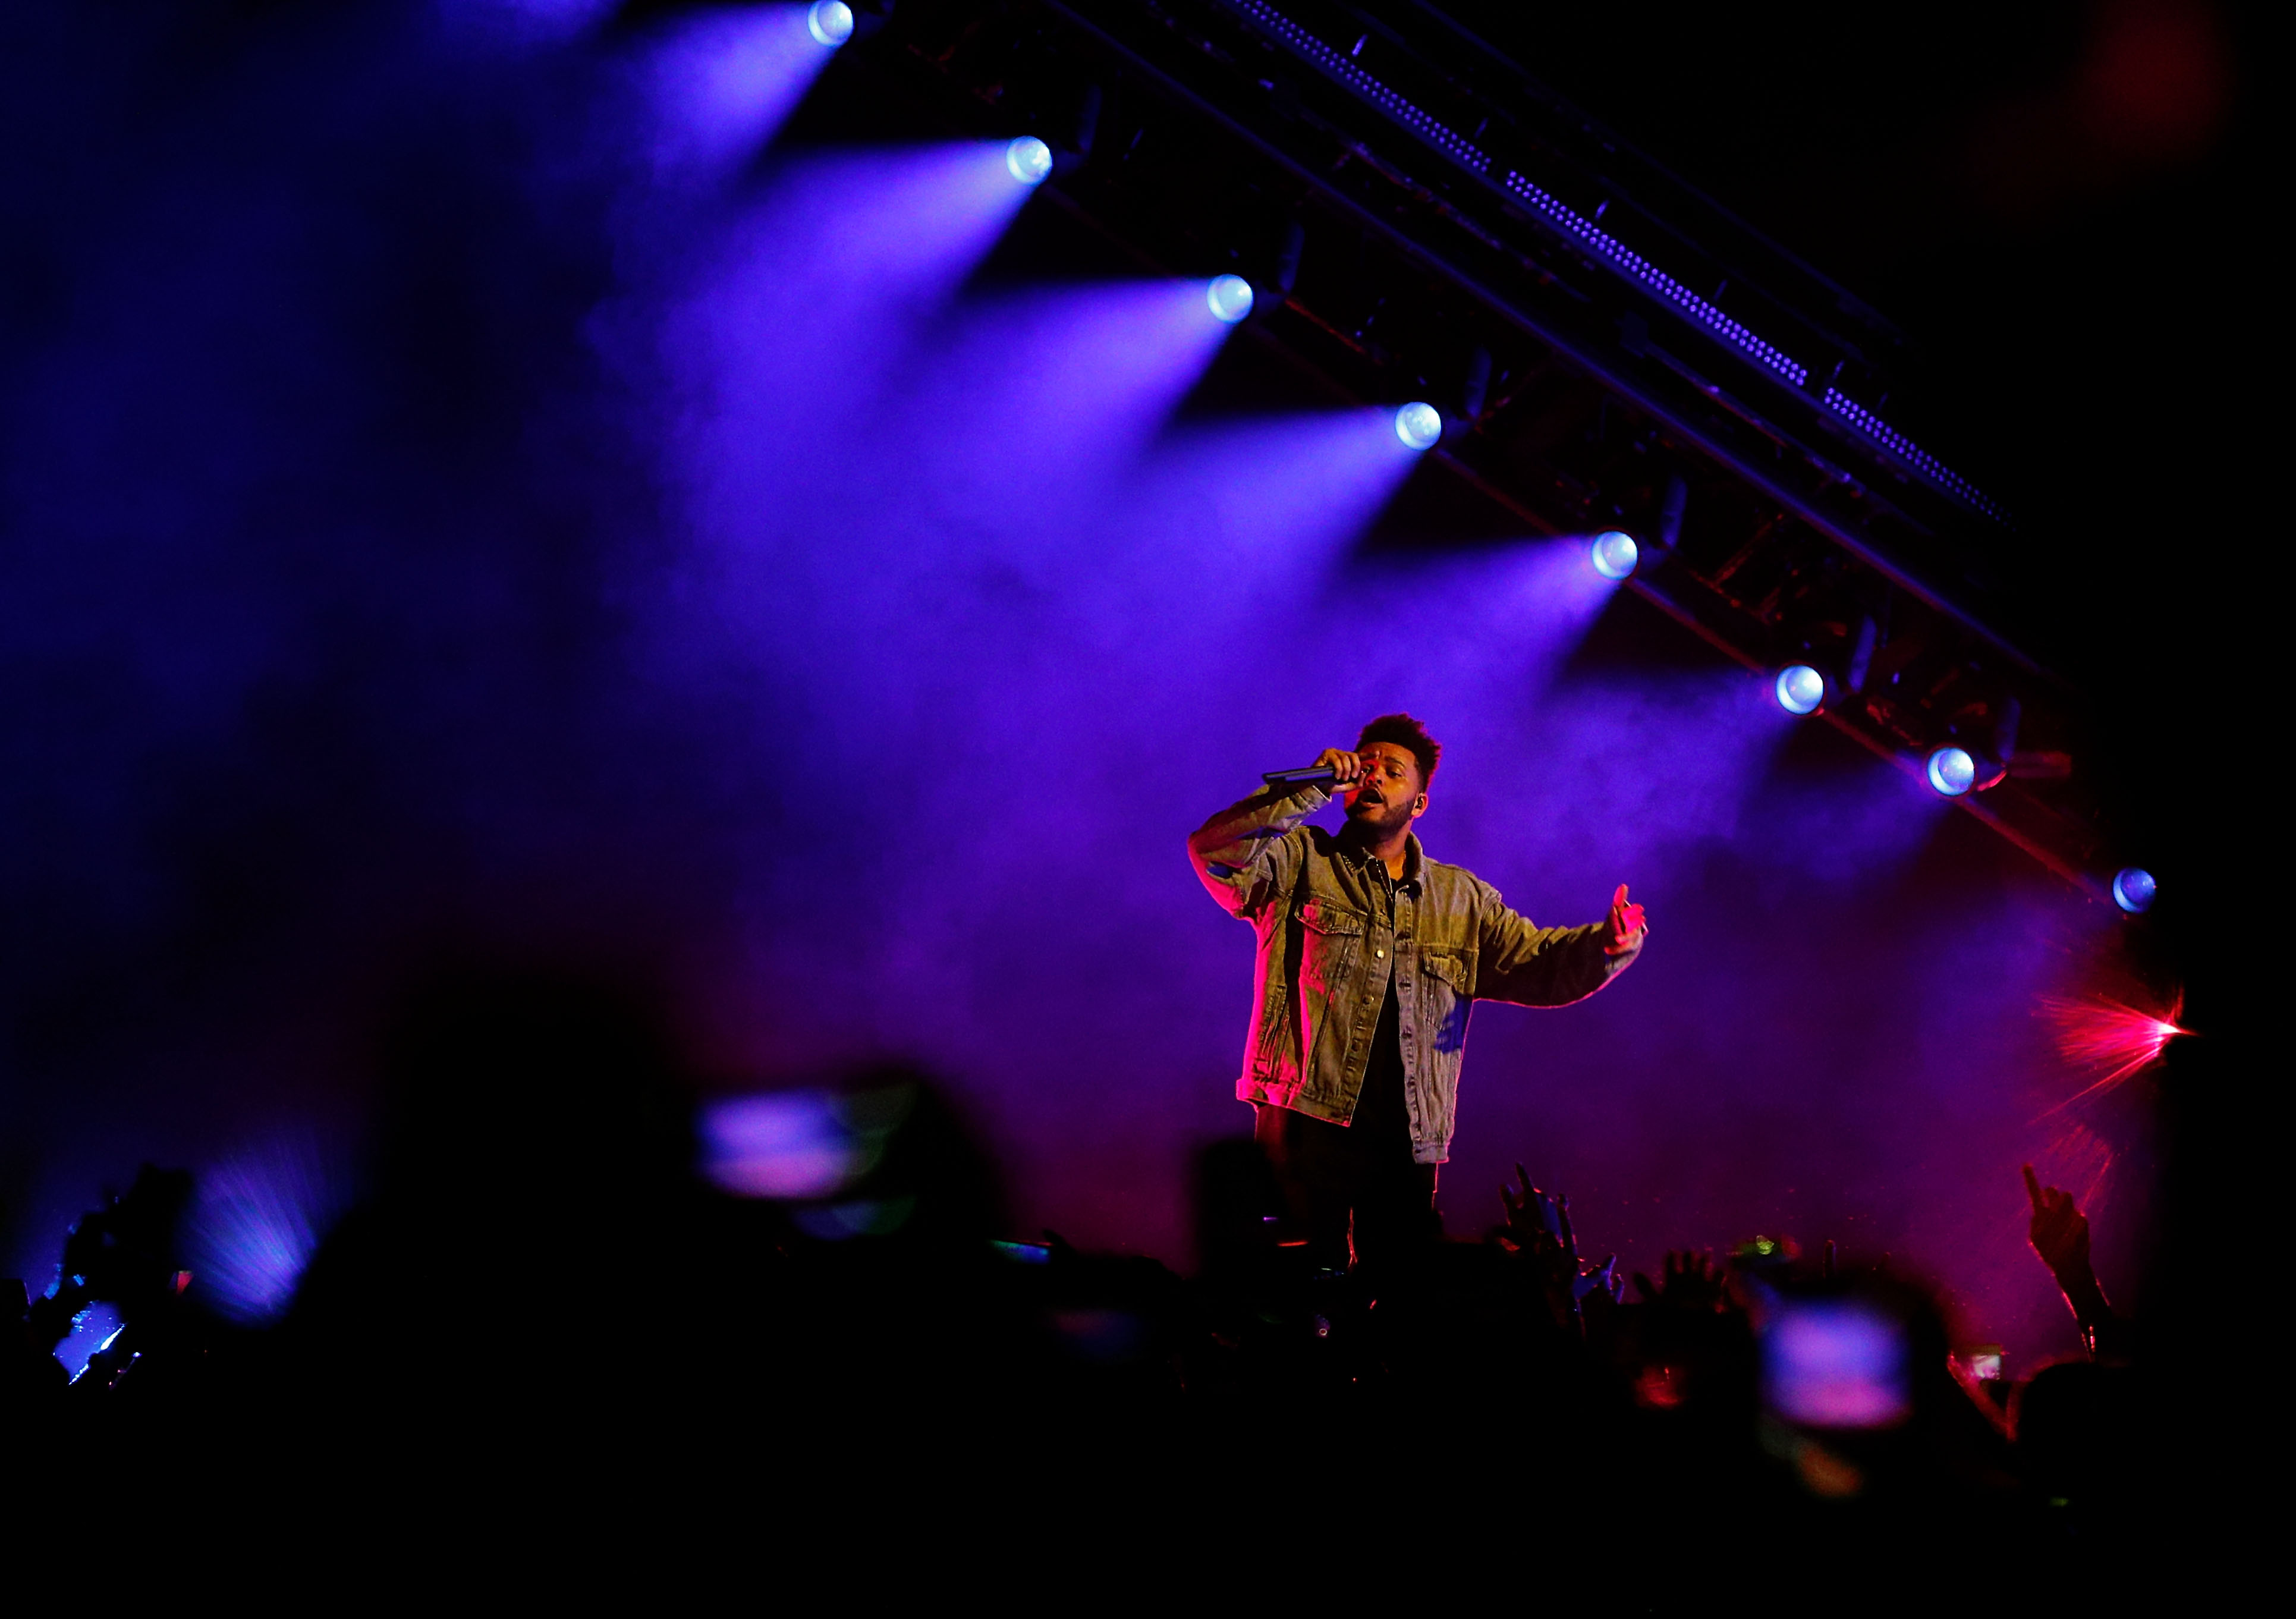 SYDNEY, AUSTRALIA - DECEMBER 02:  Singer Abel Makkonen Tesfaye, known professionally as The Weeknd, performs on stage during the Starboy: Legend of the Fall 2017 World Tour at Qudos Bank Arena on December 2, 2017 in Sydney, Australia.  (Photo by Hanna Lassen/WireImage)